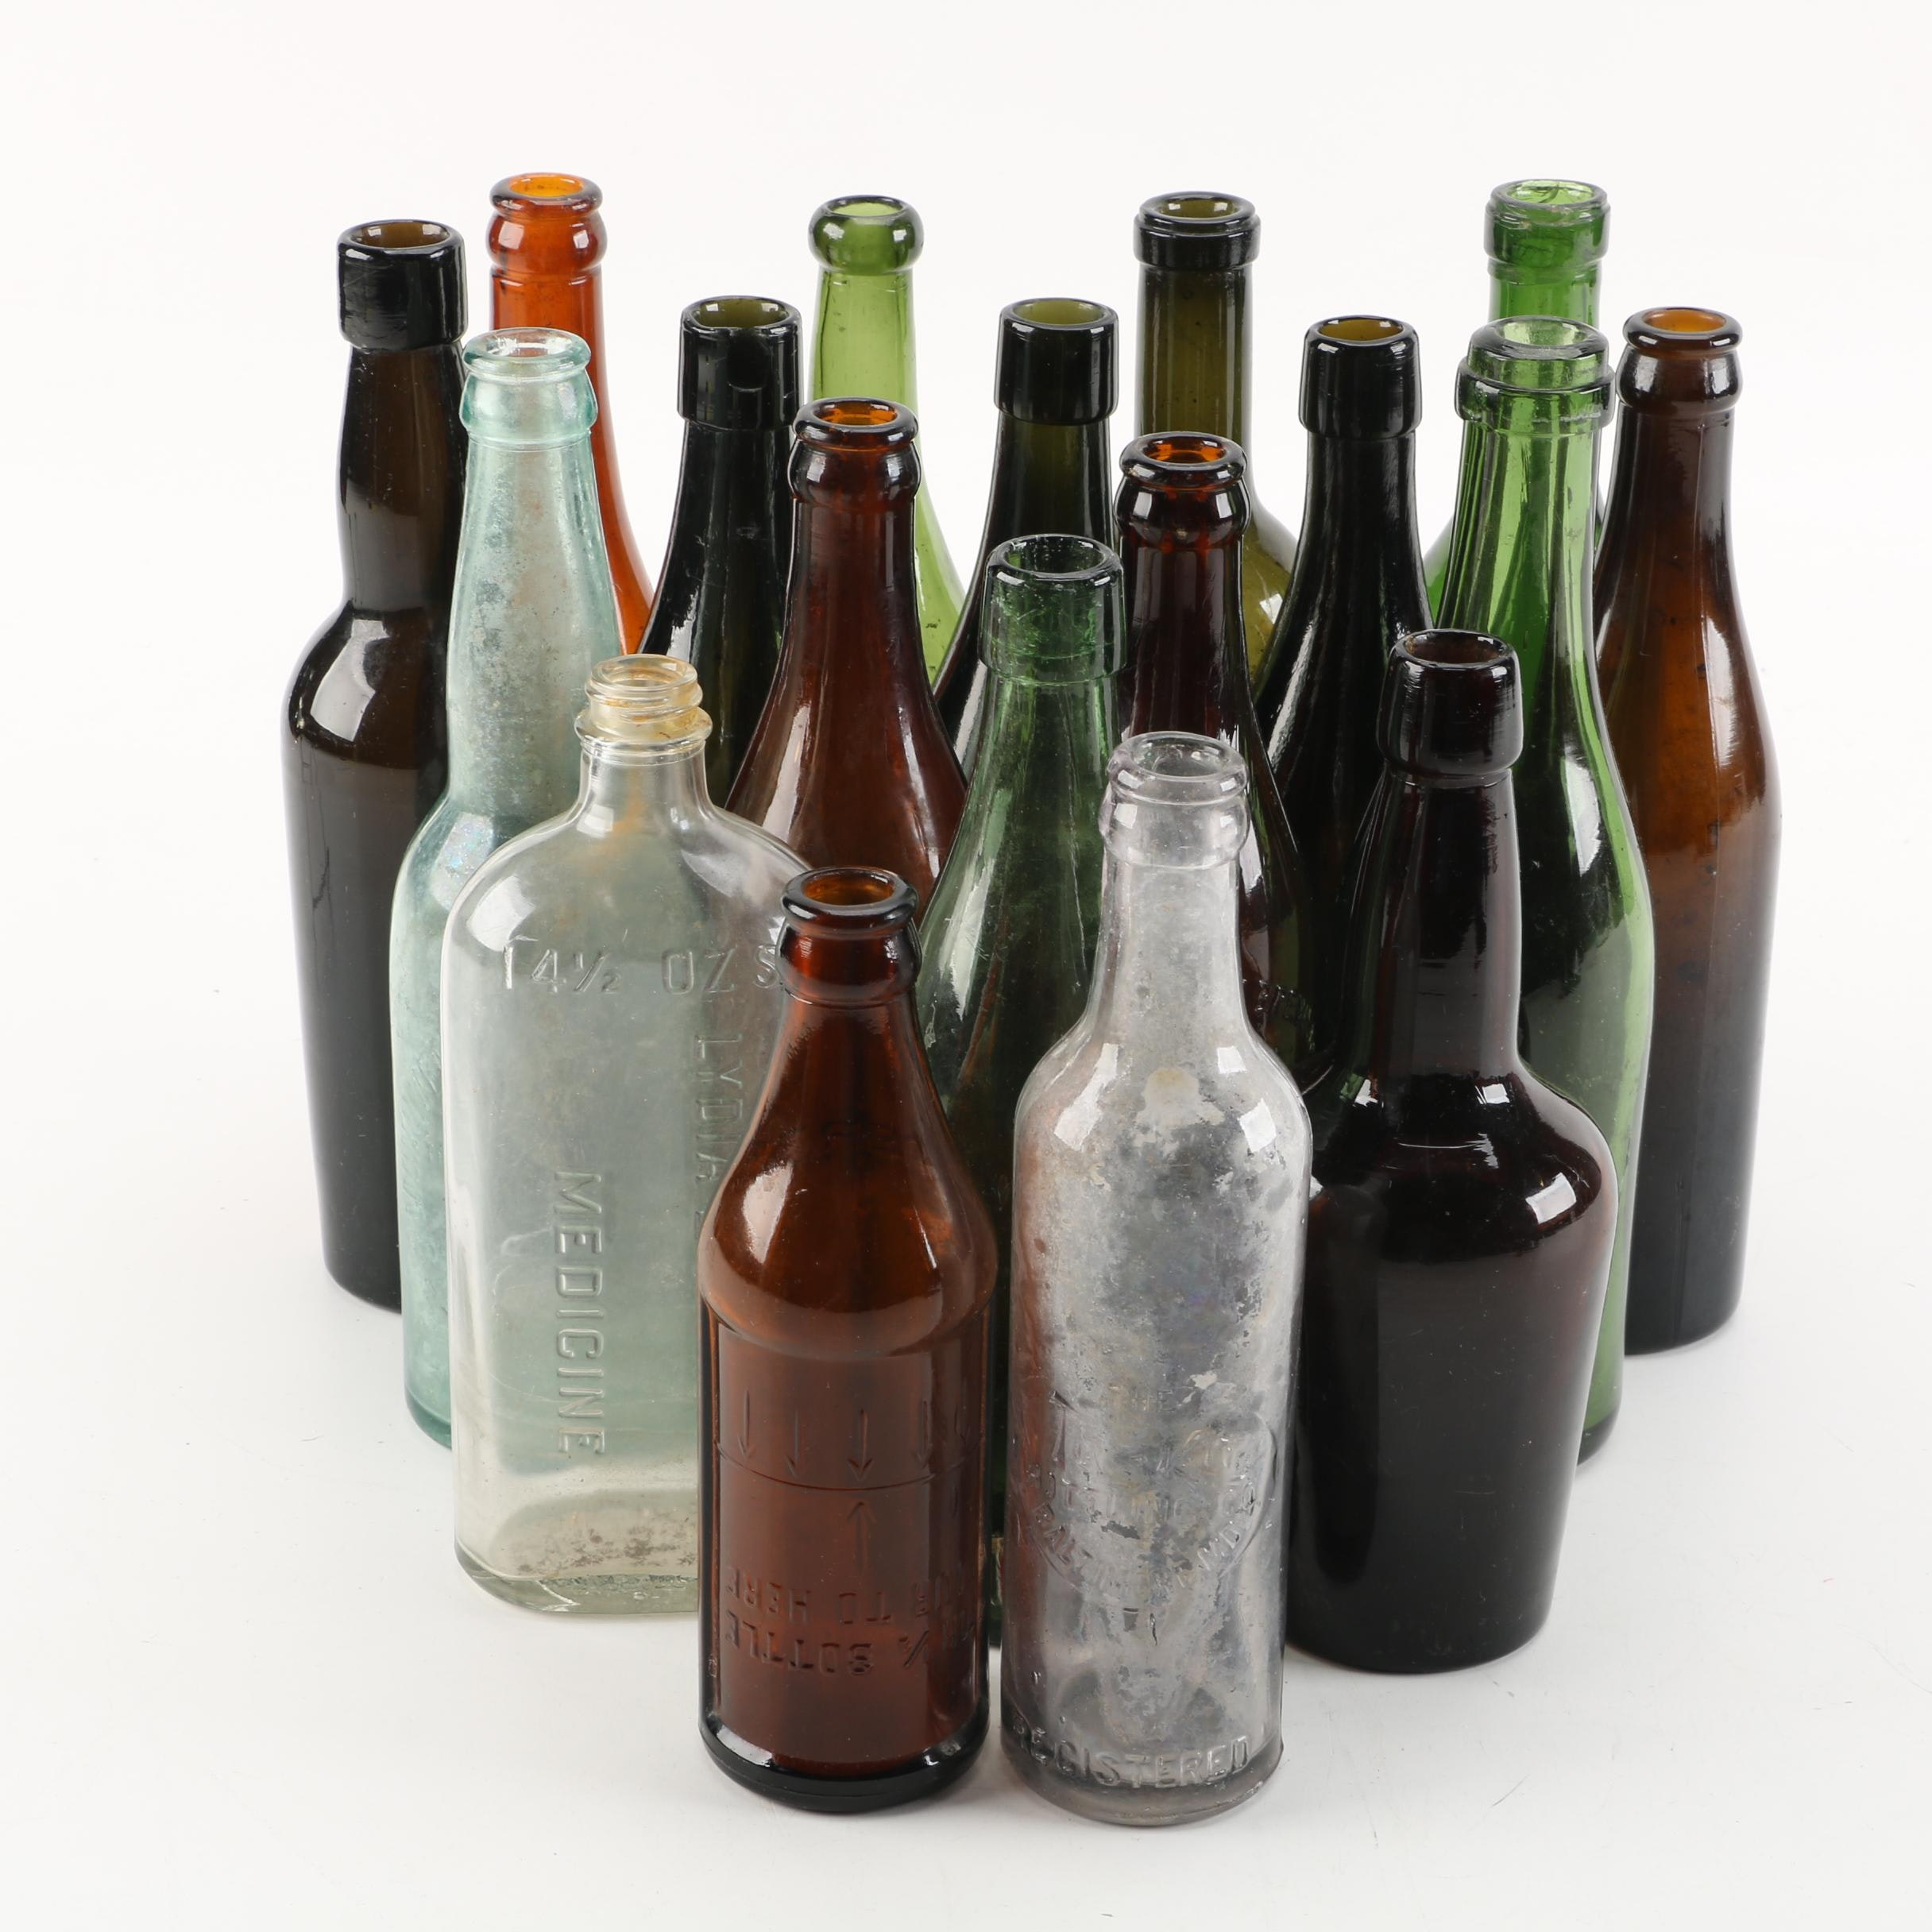 Vintage Glass Bottles, including Certo and Darley Park Brewery